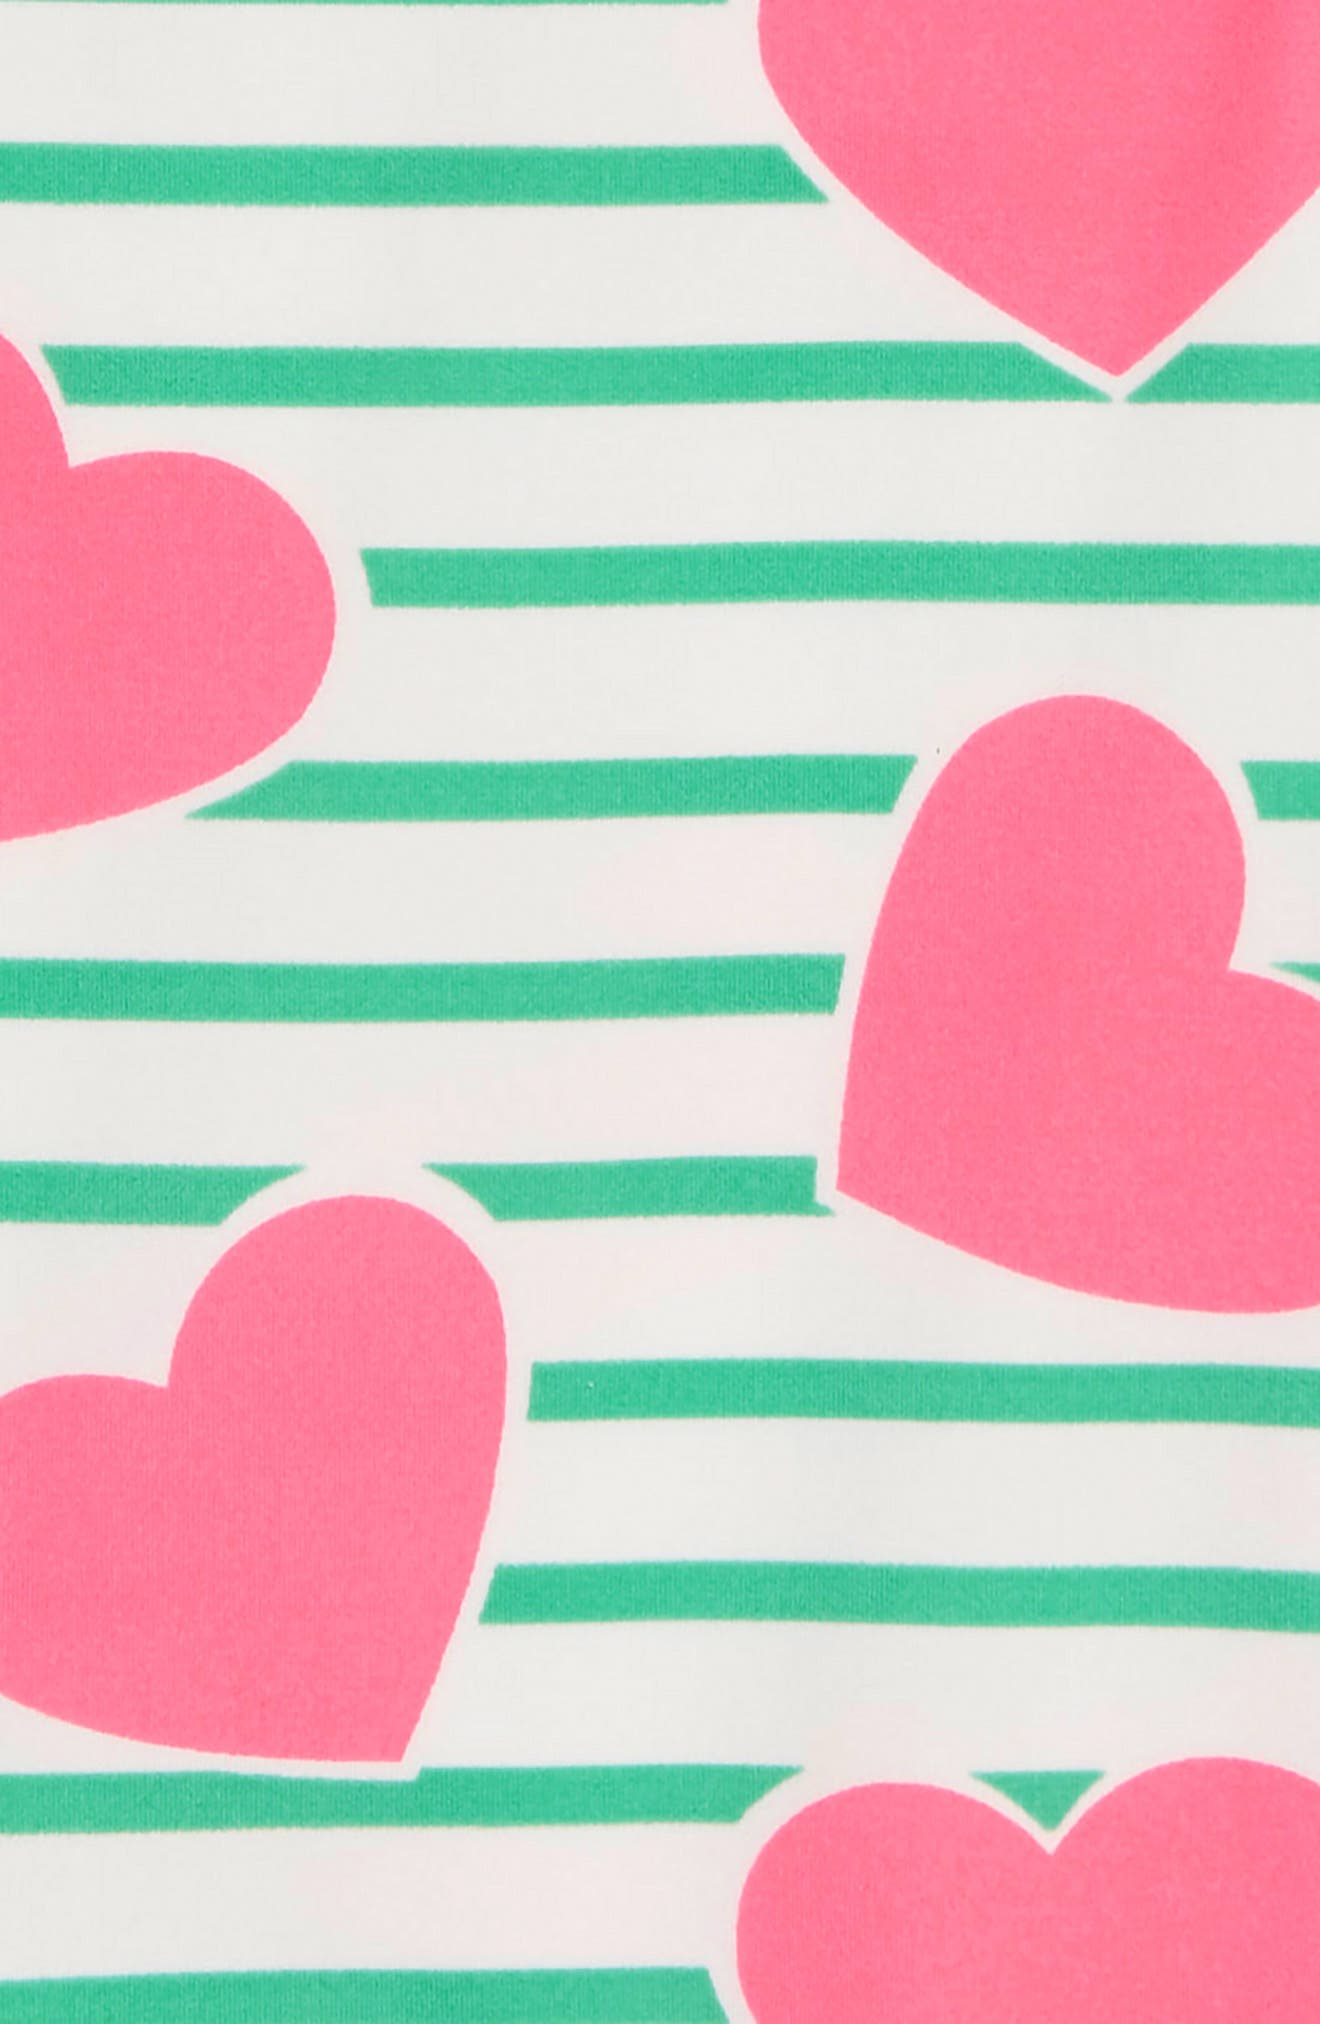 Print One-Piece Swimsuit,                             Alternate thumbnail 2, color,                             GREEN IVORY CORAL PNK HEARTS